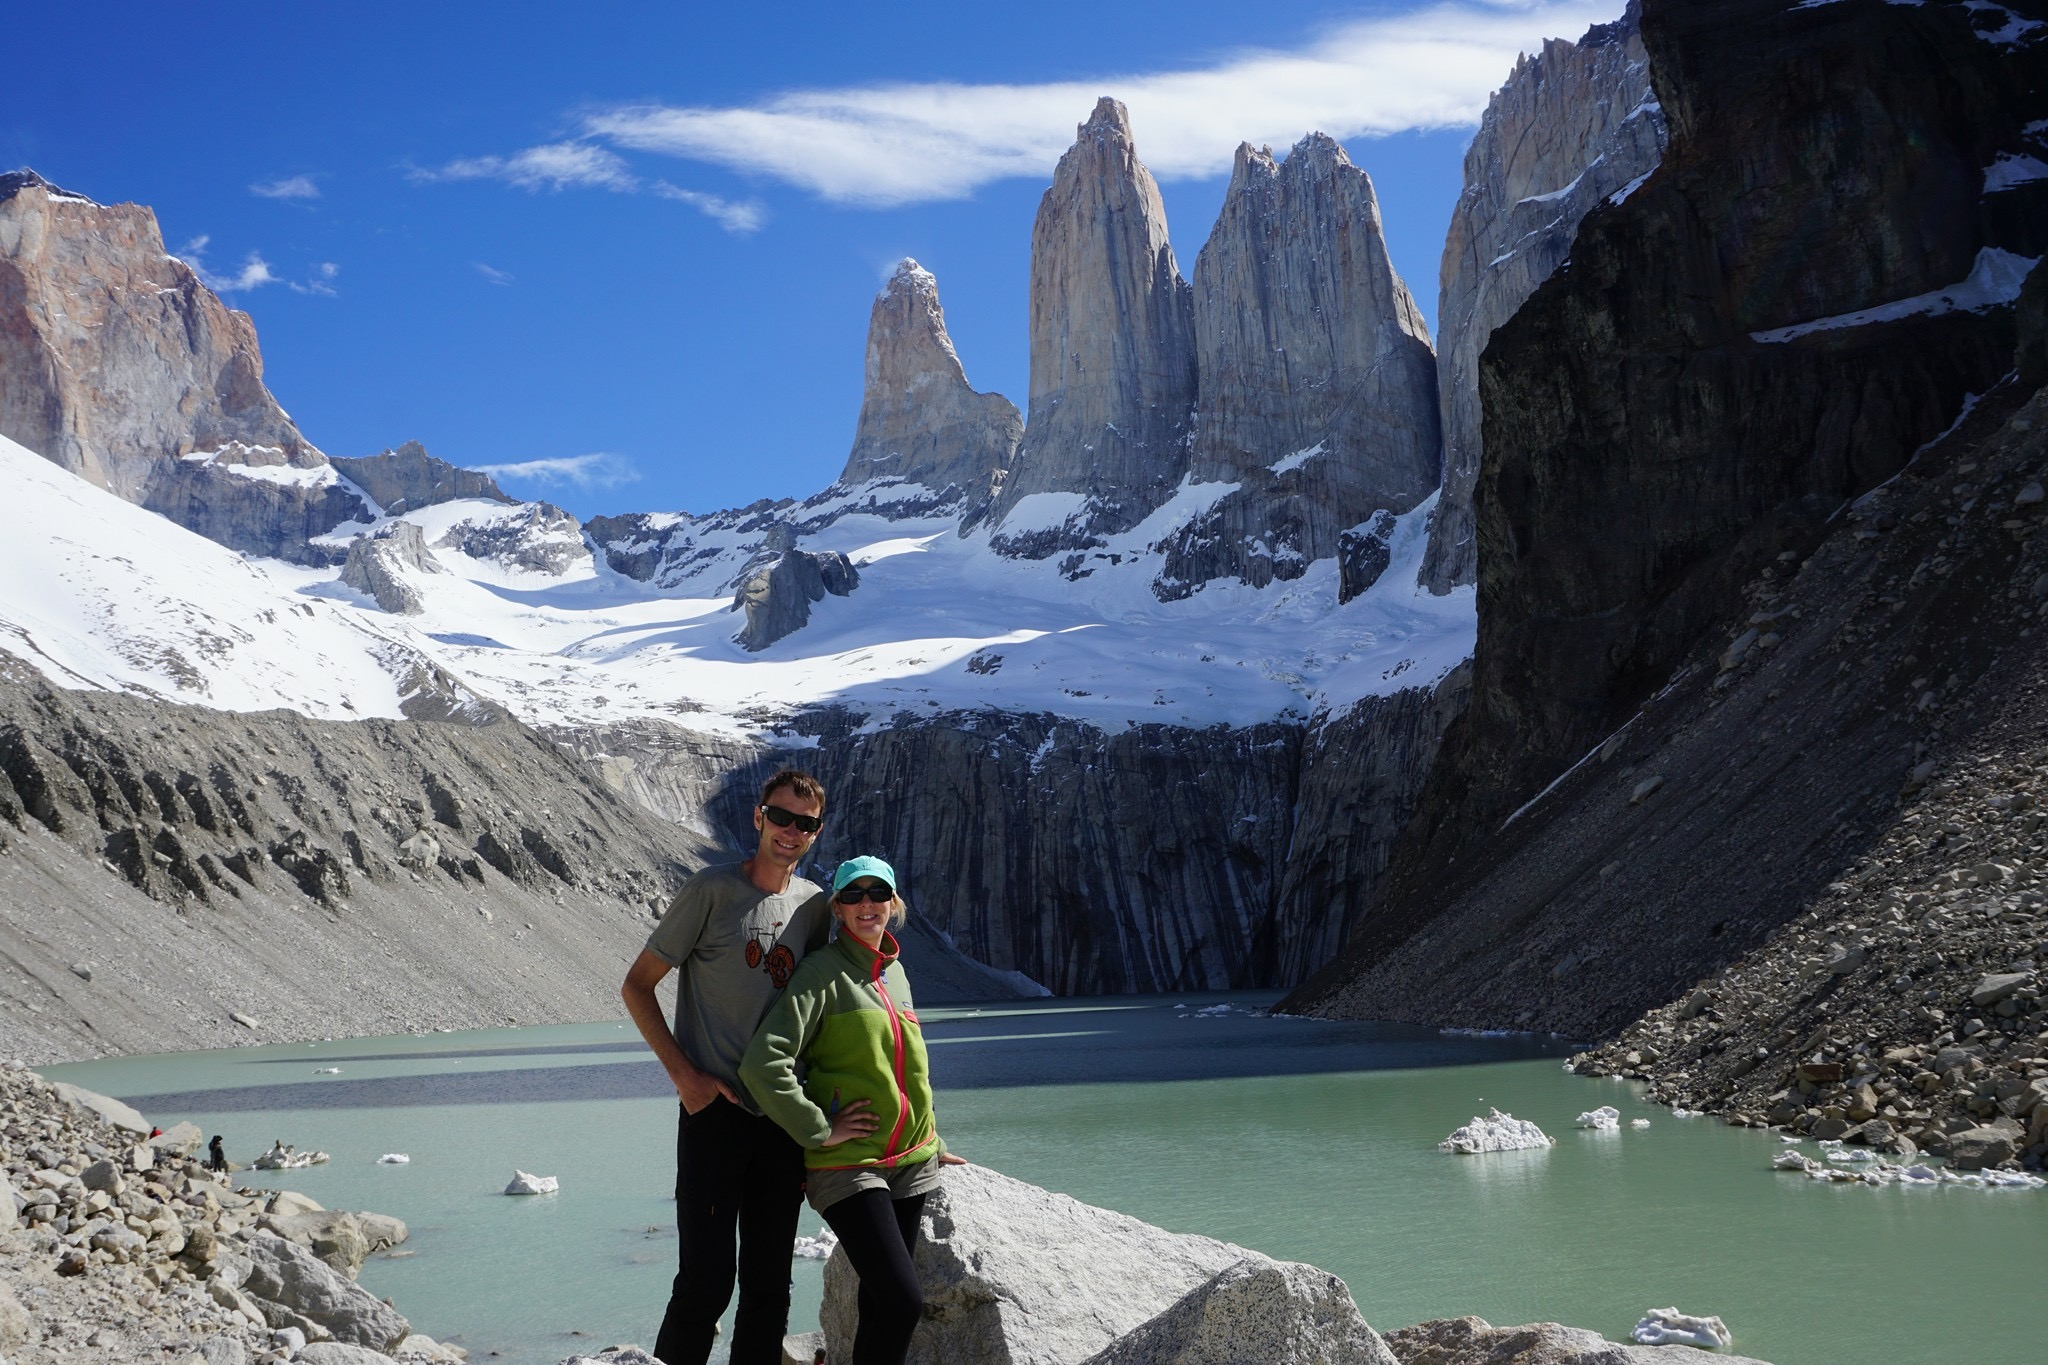 Torres Del Paine hike is beyond amazing